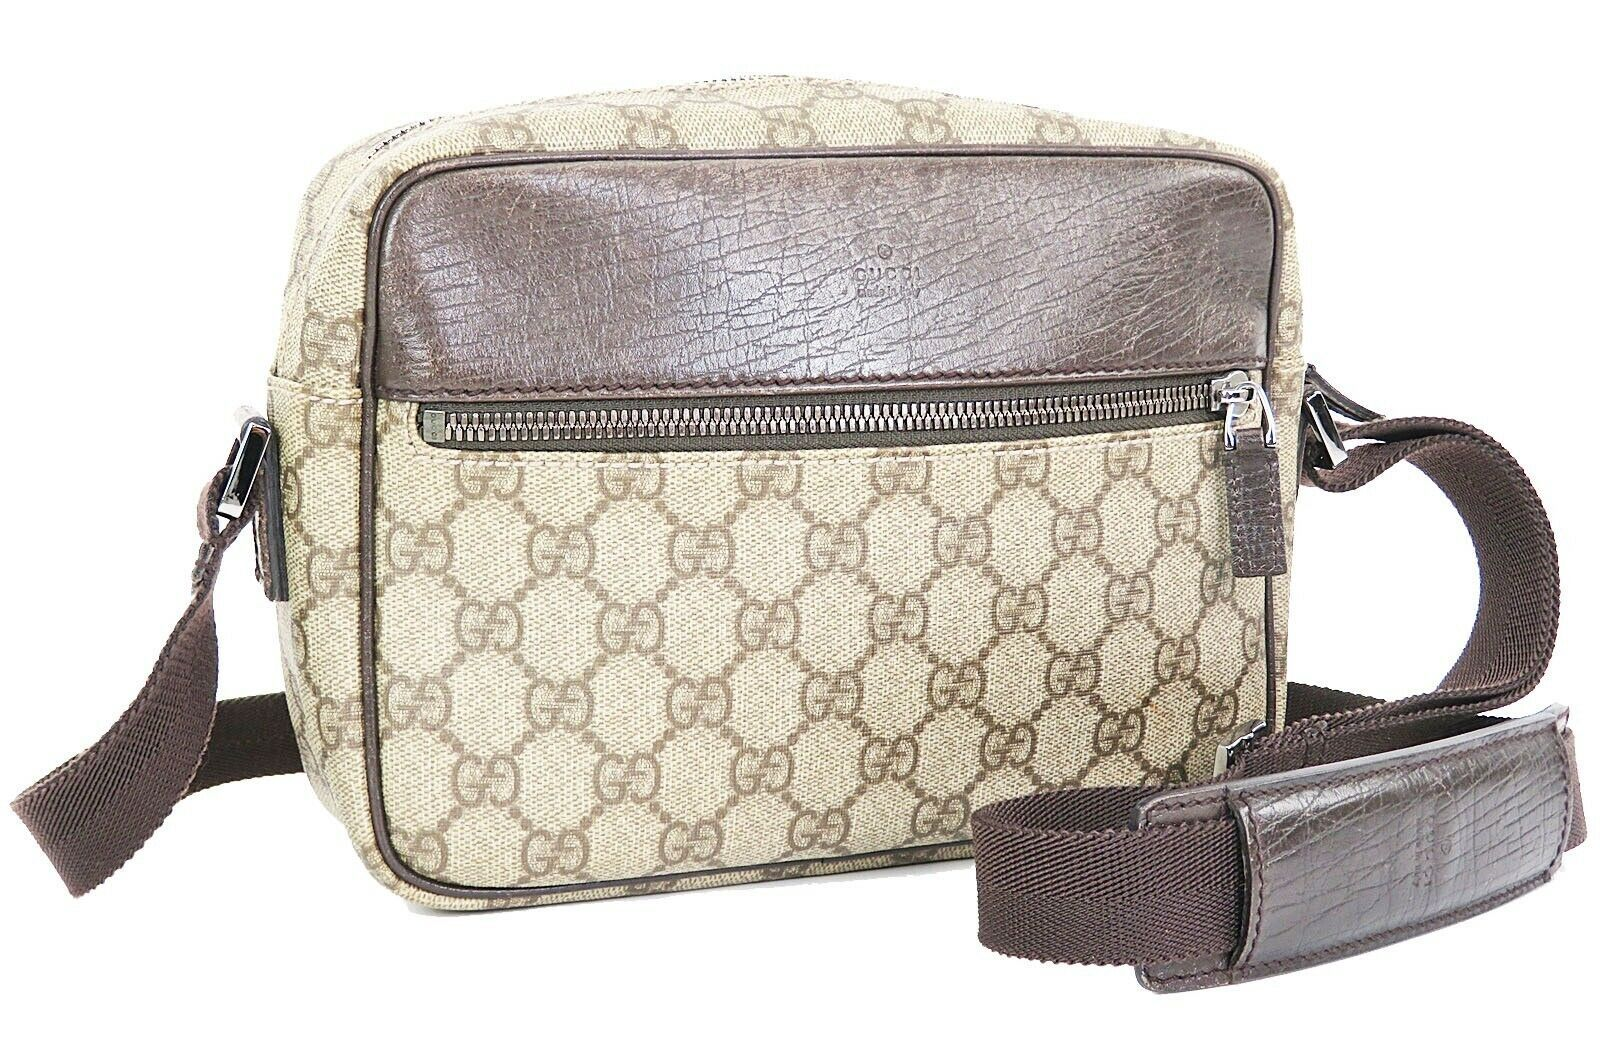 Authentic GUCCI Brown GG PVC Canvas and Leather Shoulder Bag Purse #32995